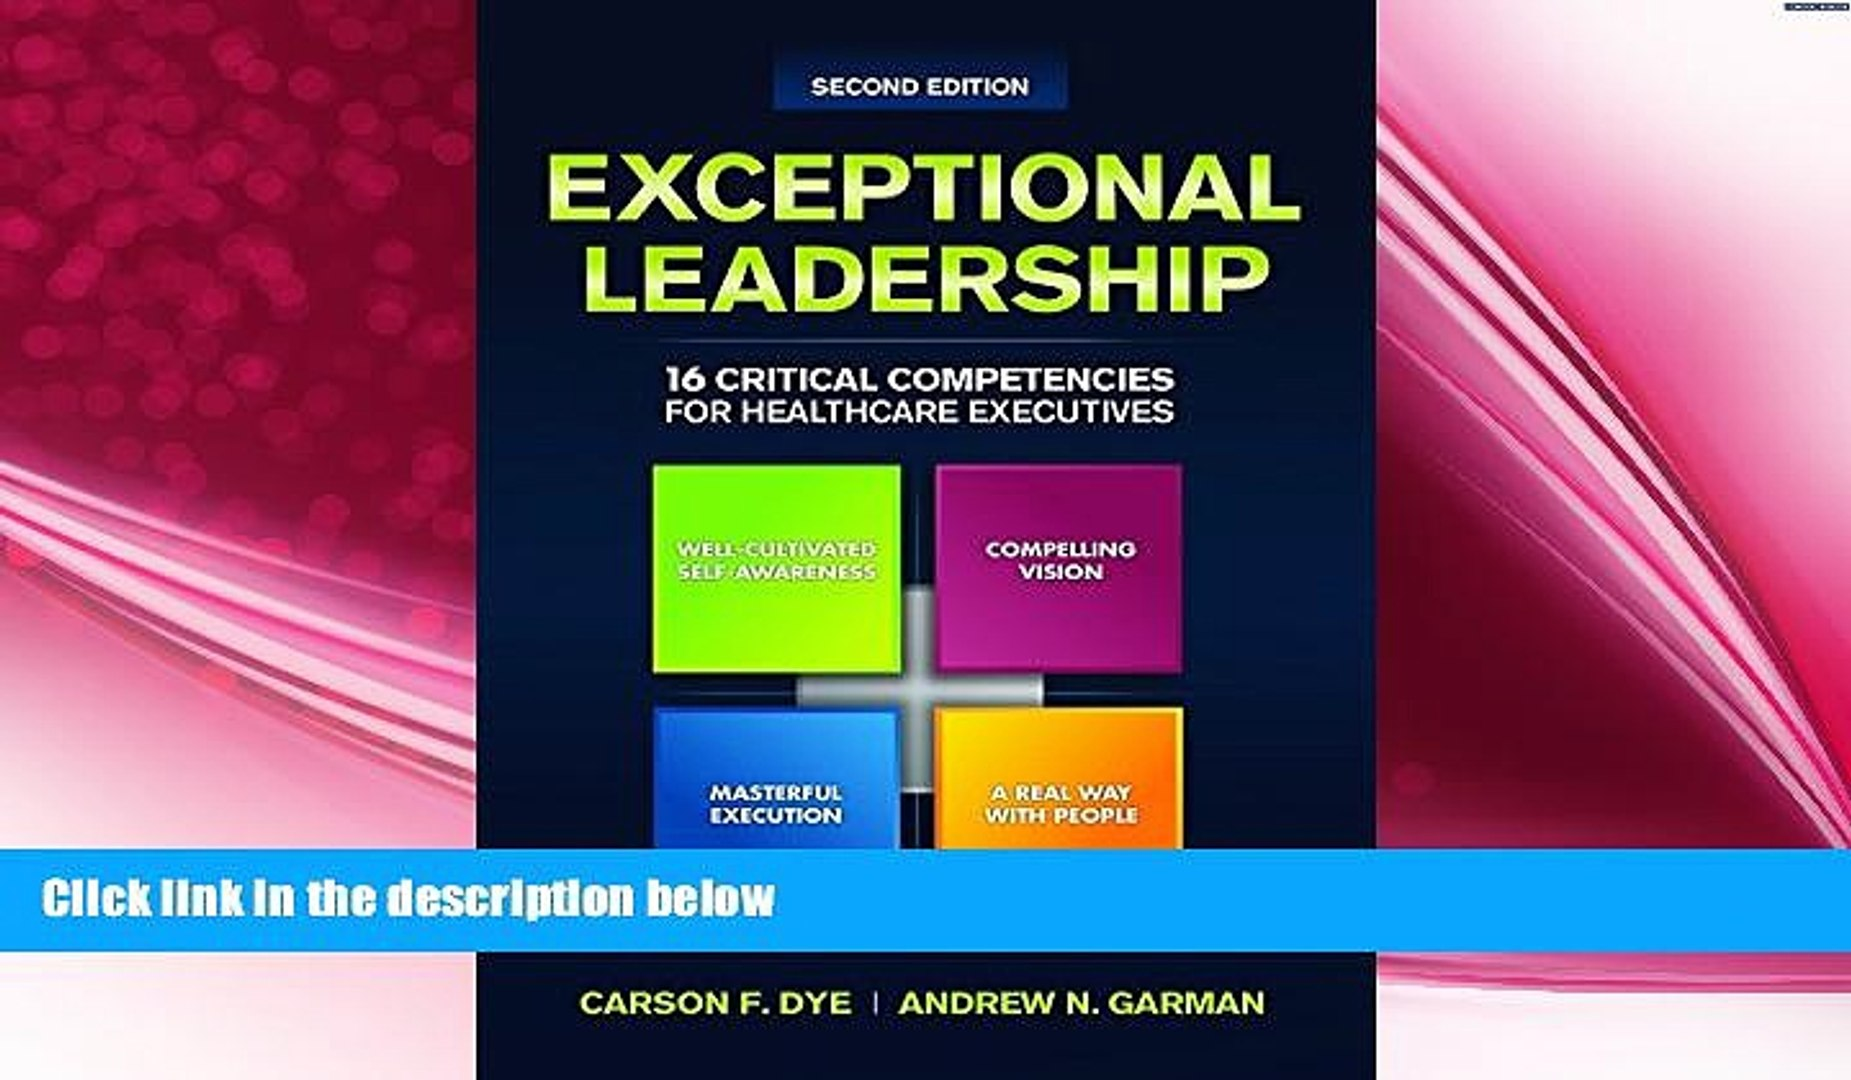 Exceptional Leadership:16 Critical Competencies for Healthcare Executives